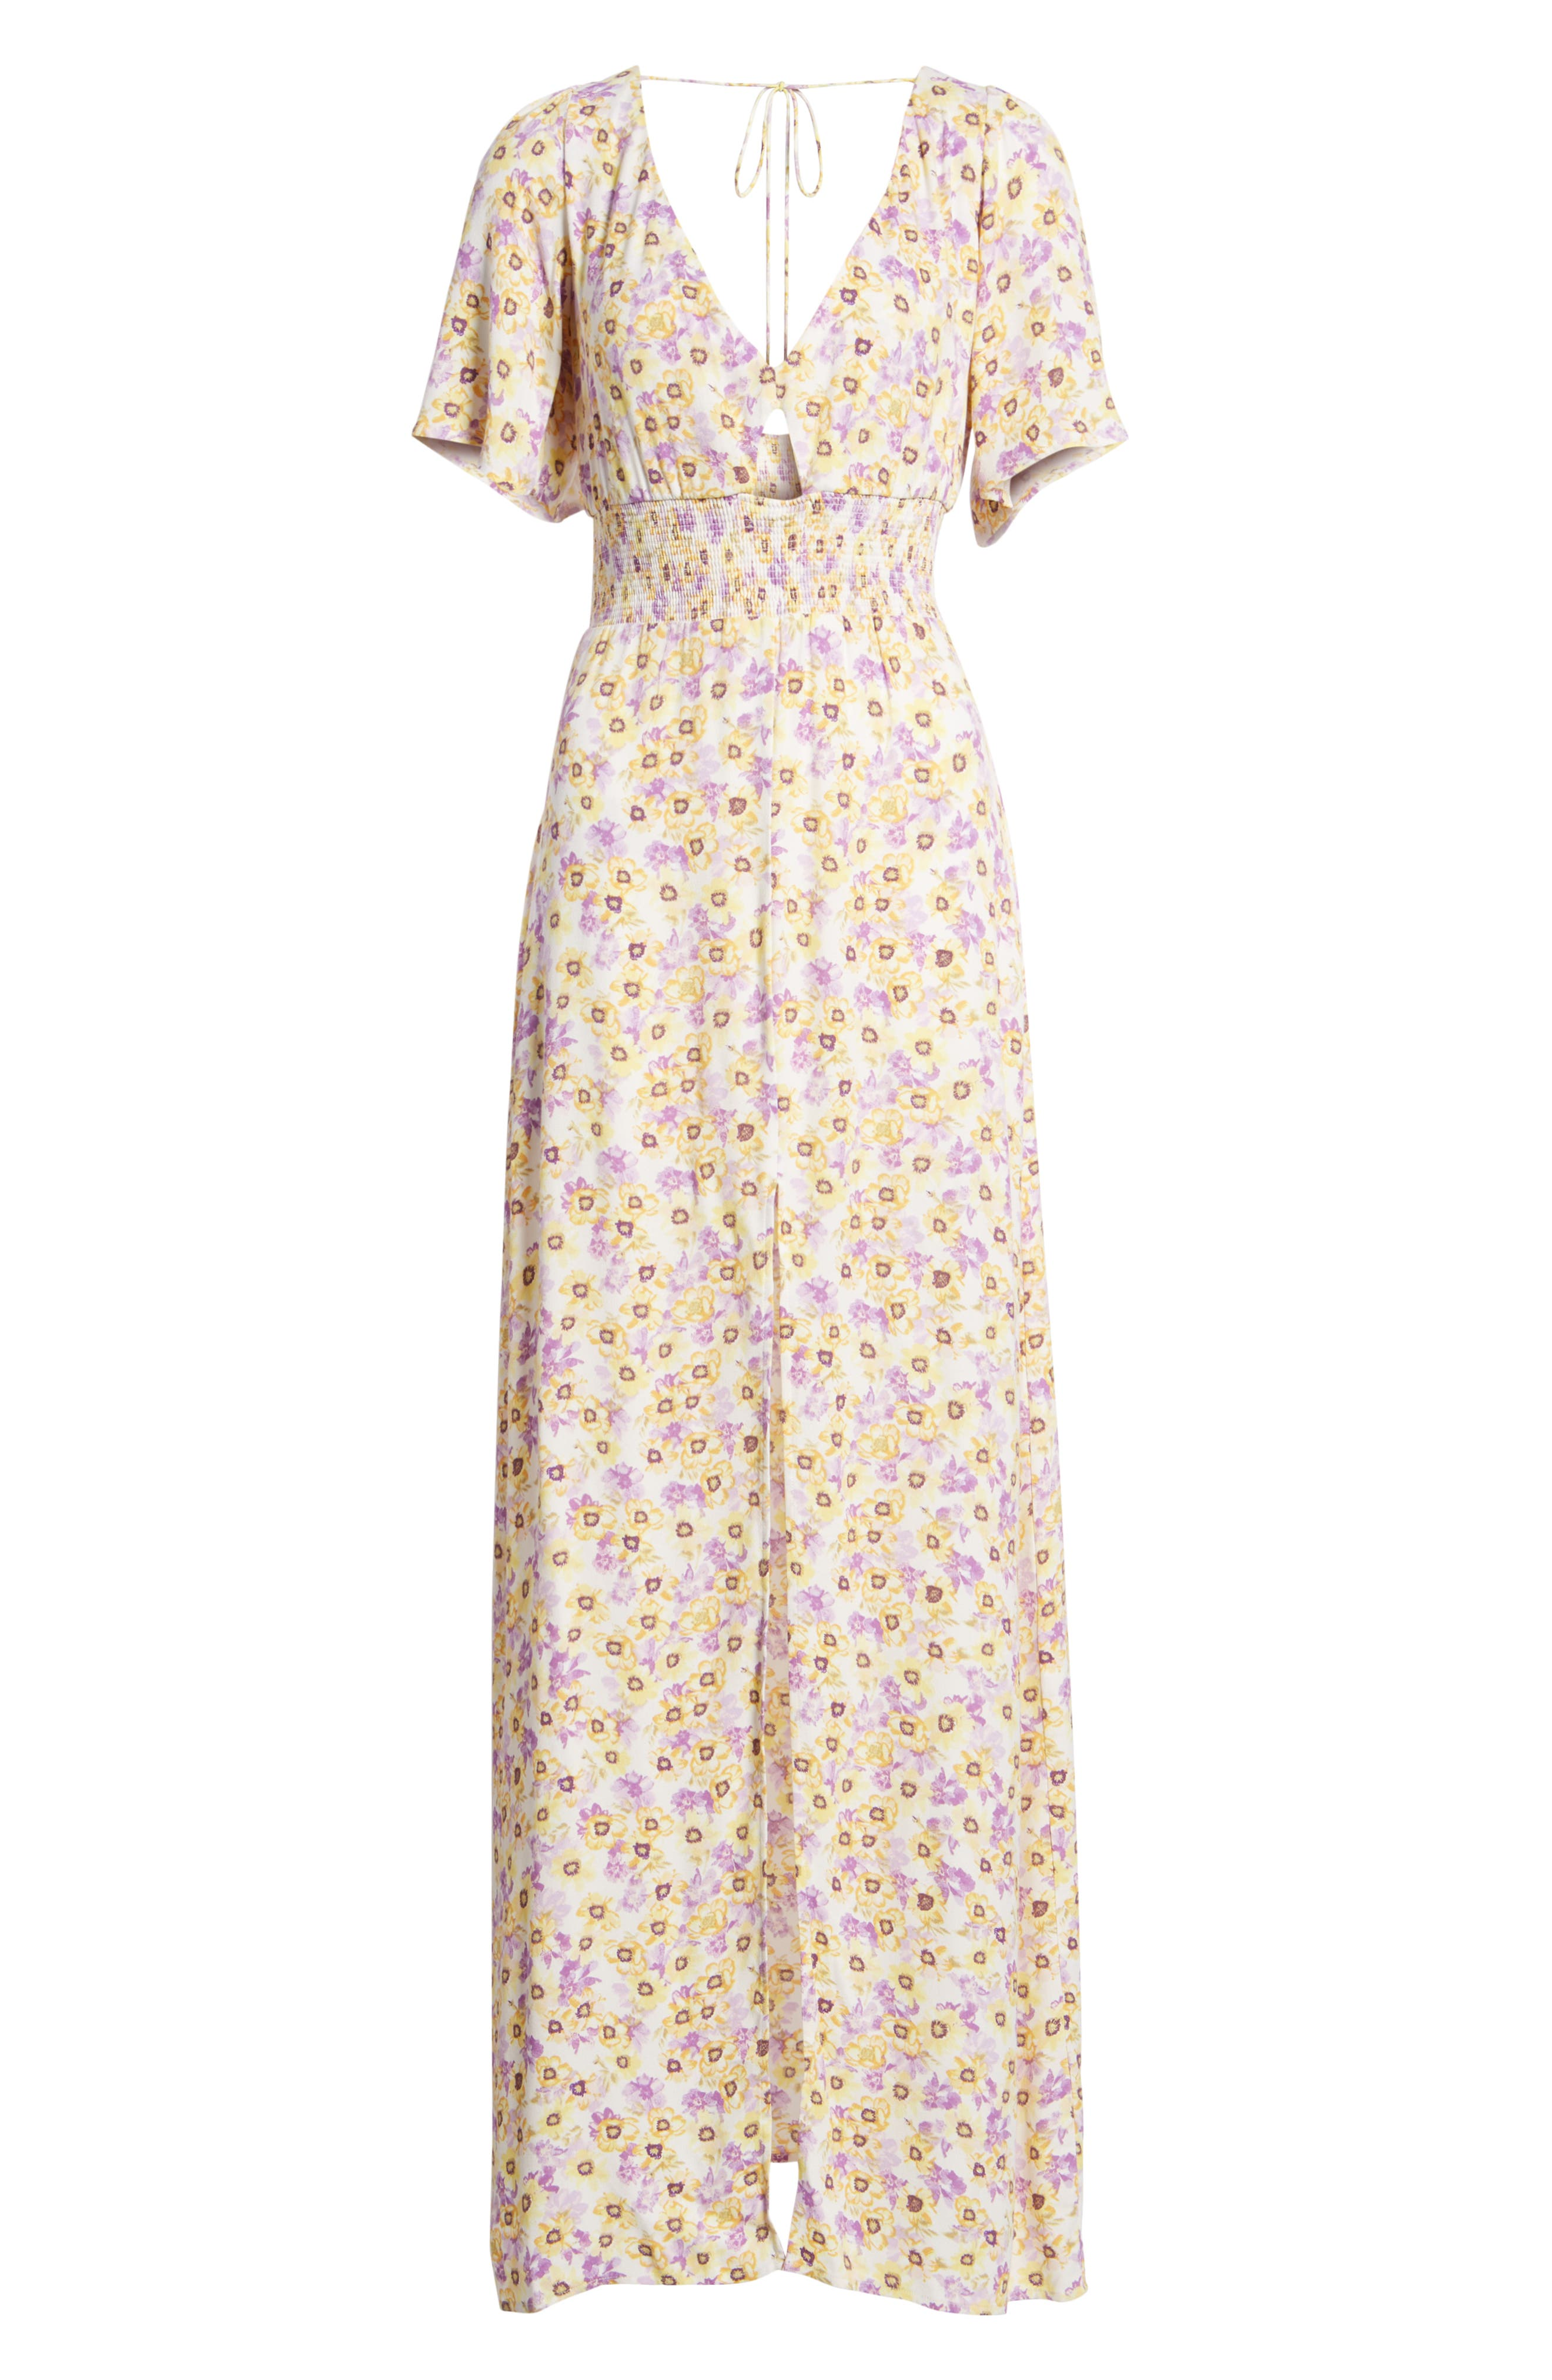 Tuscany Maxi Dress,                             Alternate thumbnail 7, color,                             YELLOW GARDEN